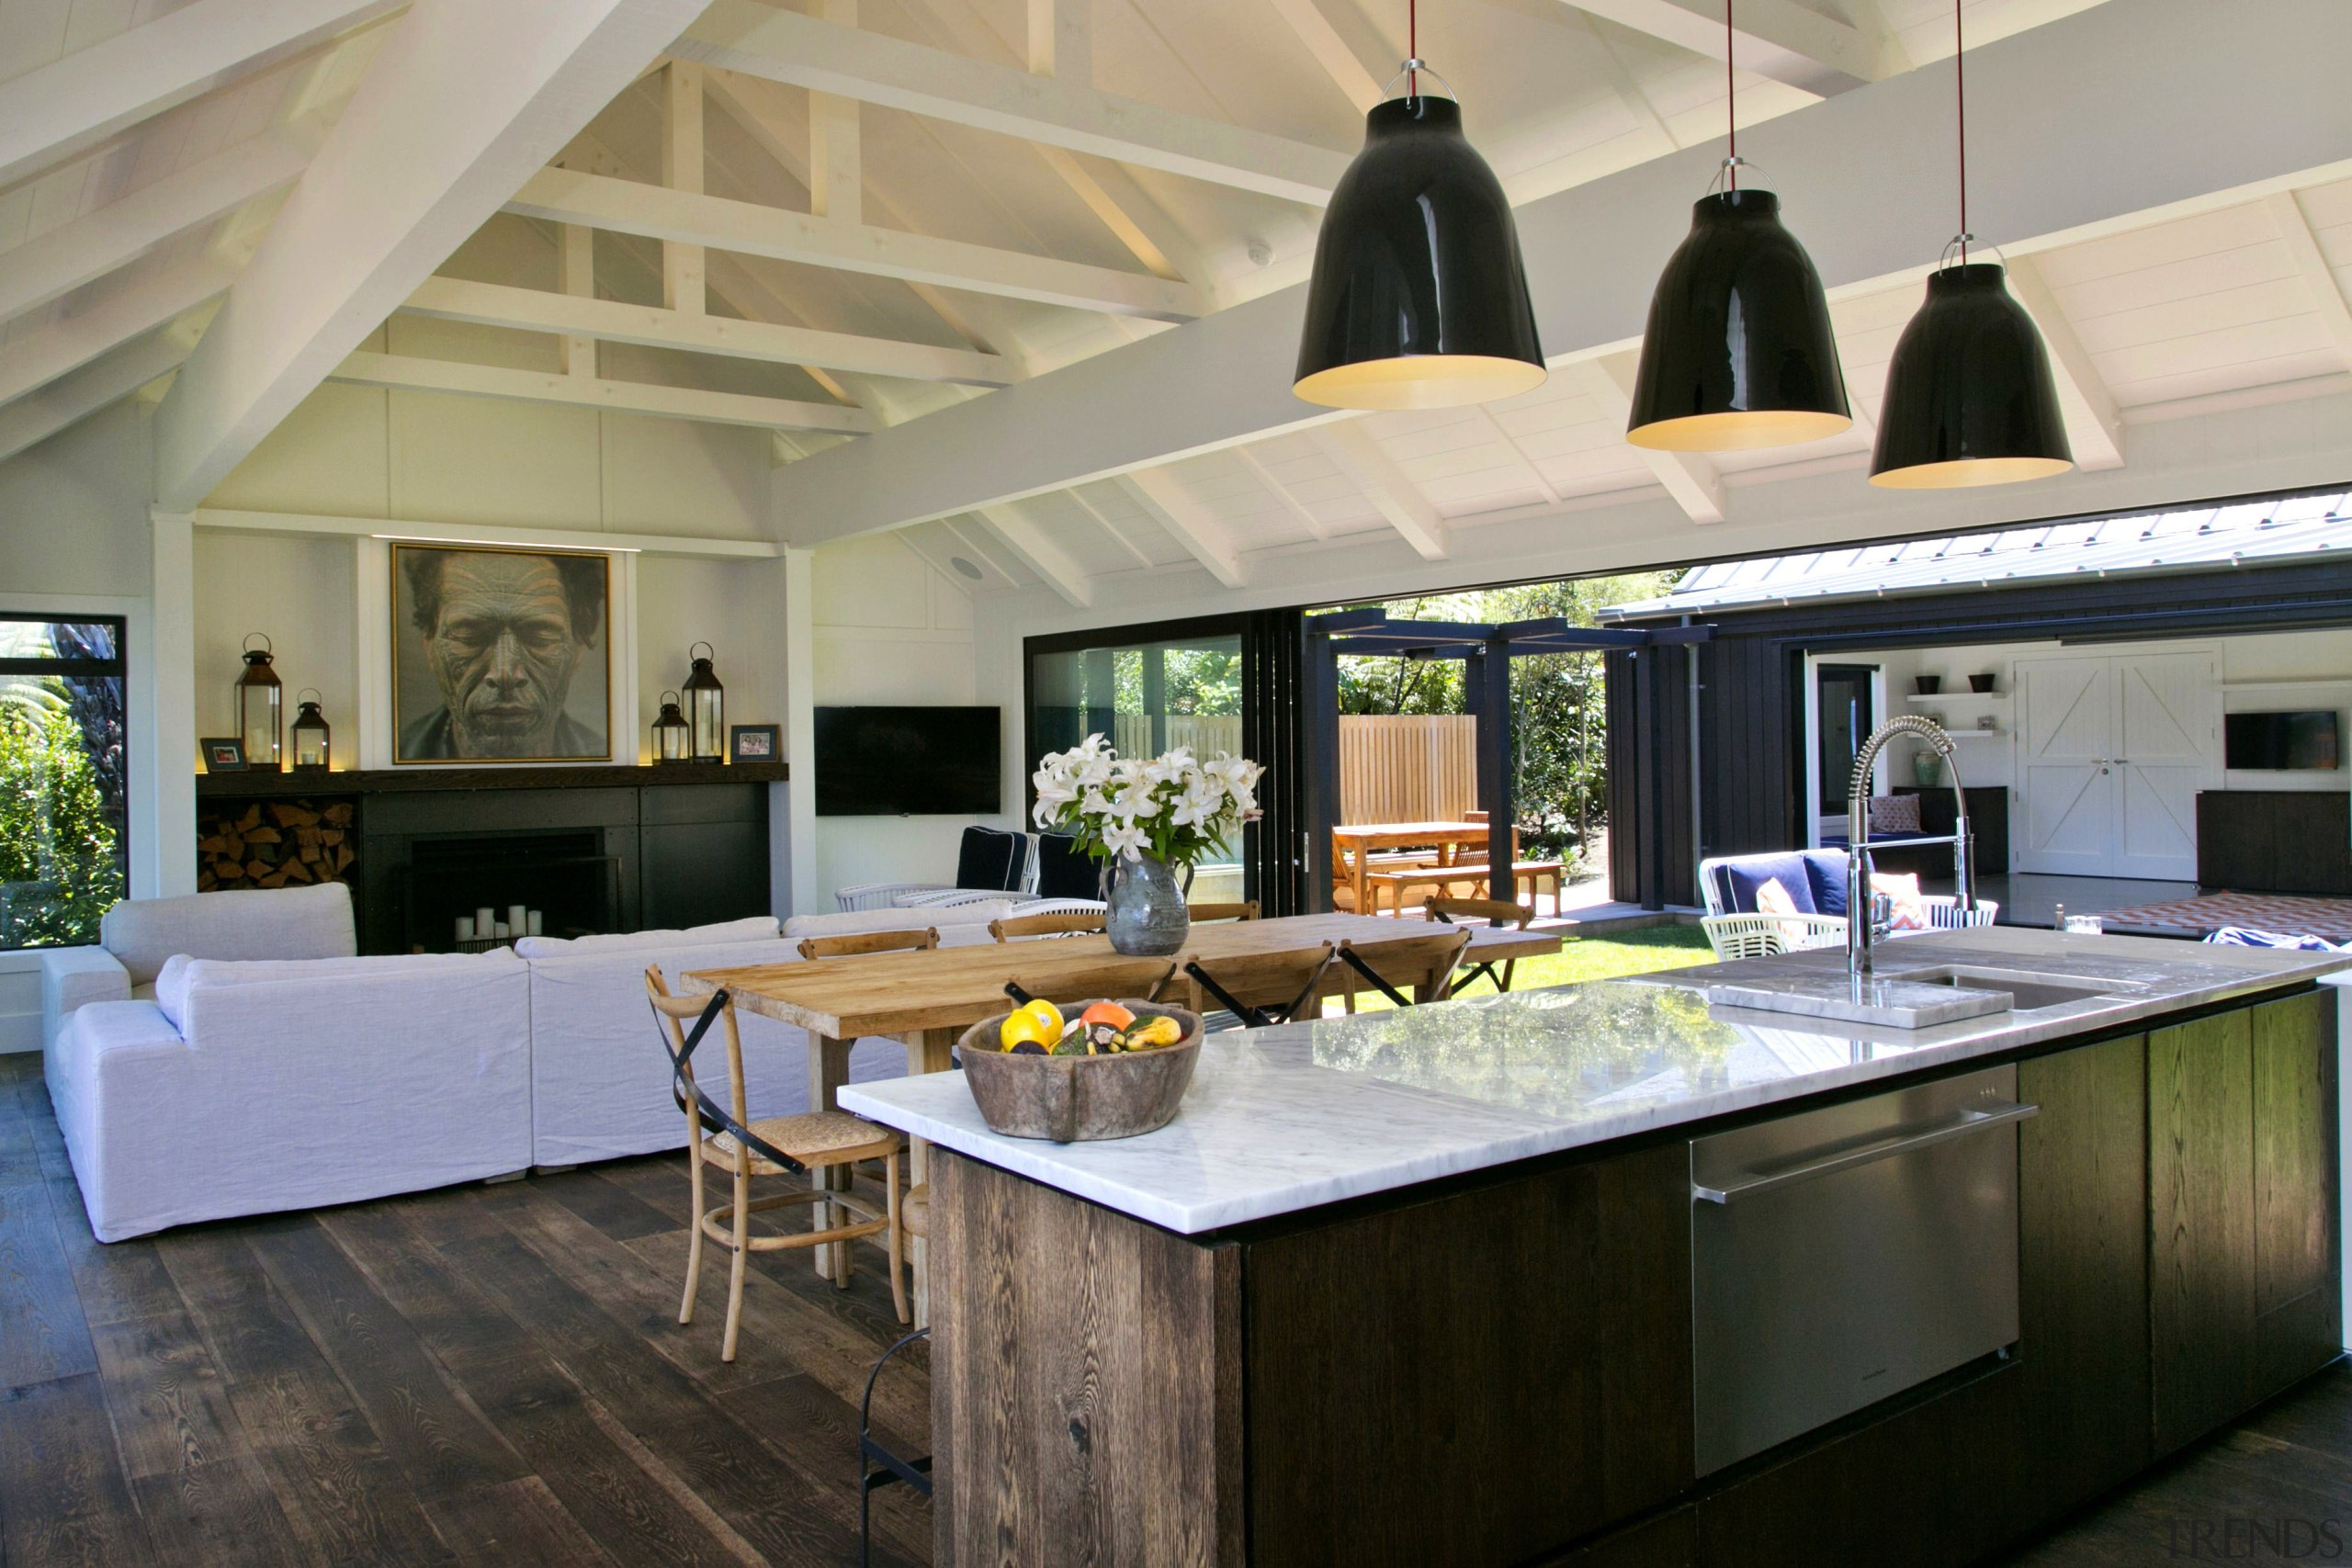 Features of this kitchen and living room space countertop, interior design, kitchen, living room, real estate, gray, black